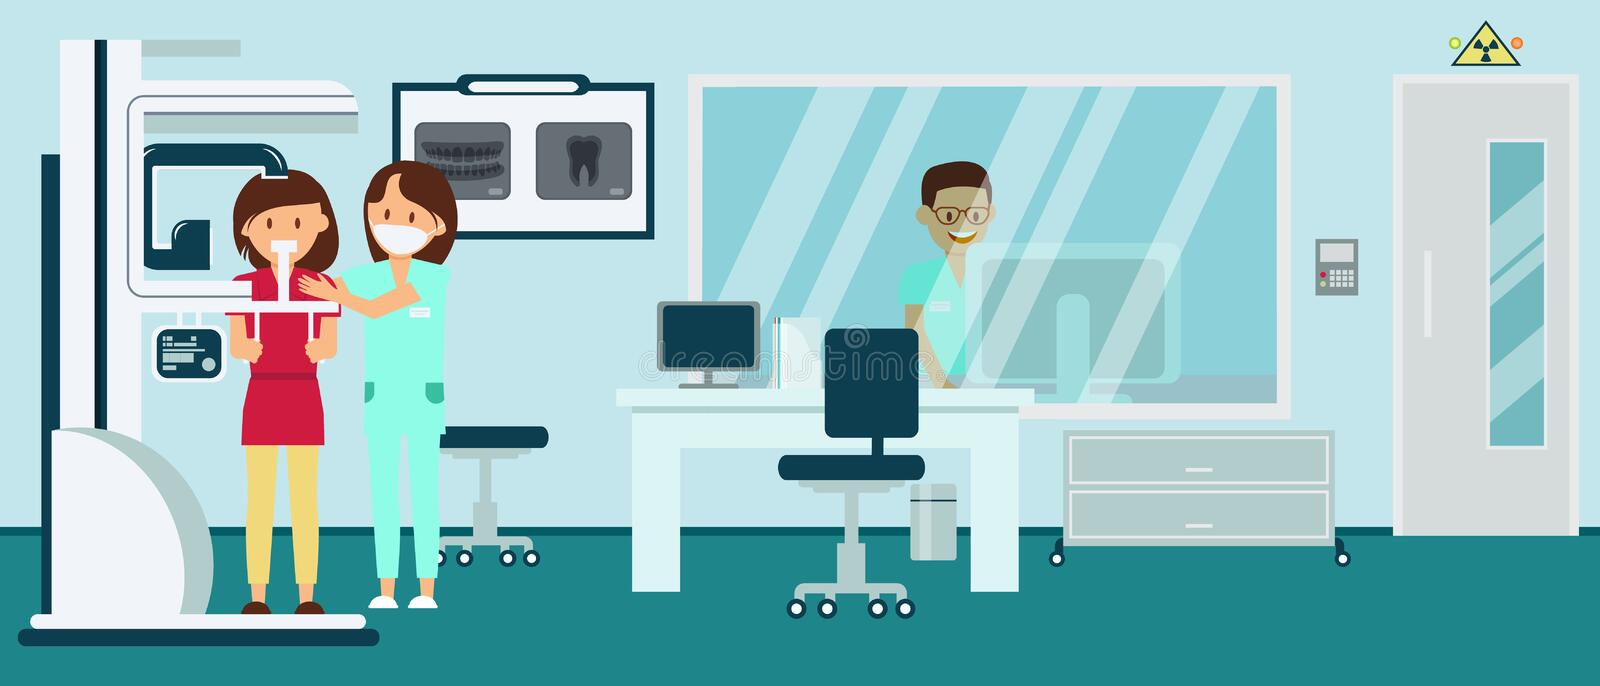 Isometric female patient makes panoramic radiography image in dental radiology room. Tooth treatment concept. Vector illustration stock illustration